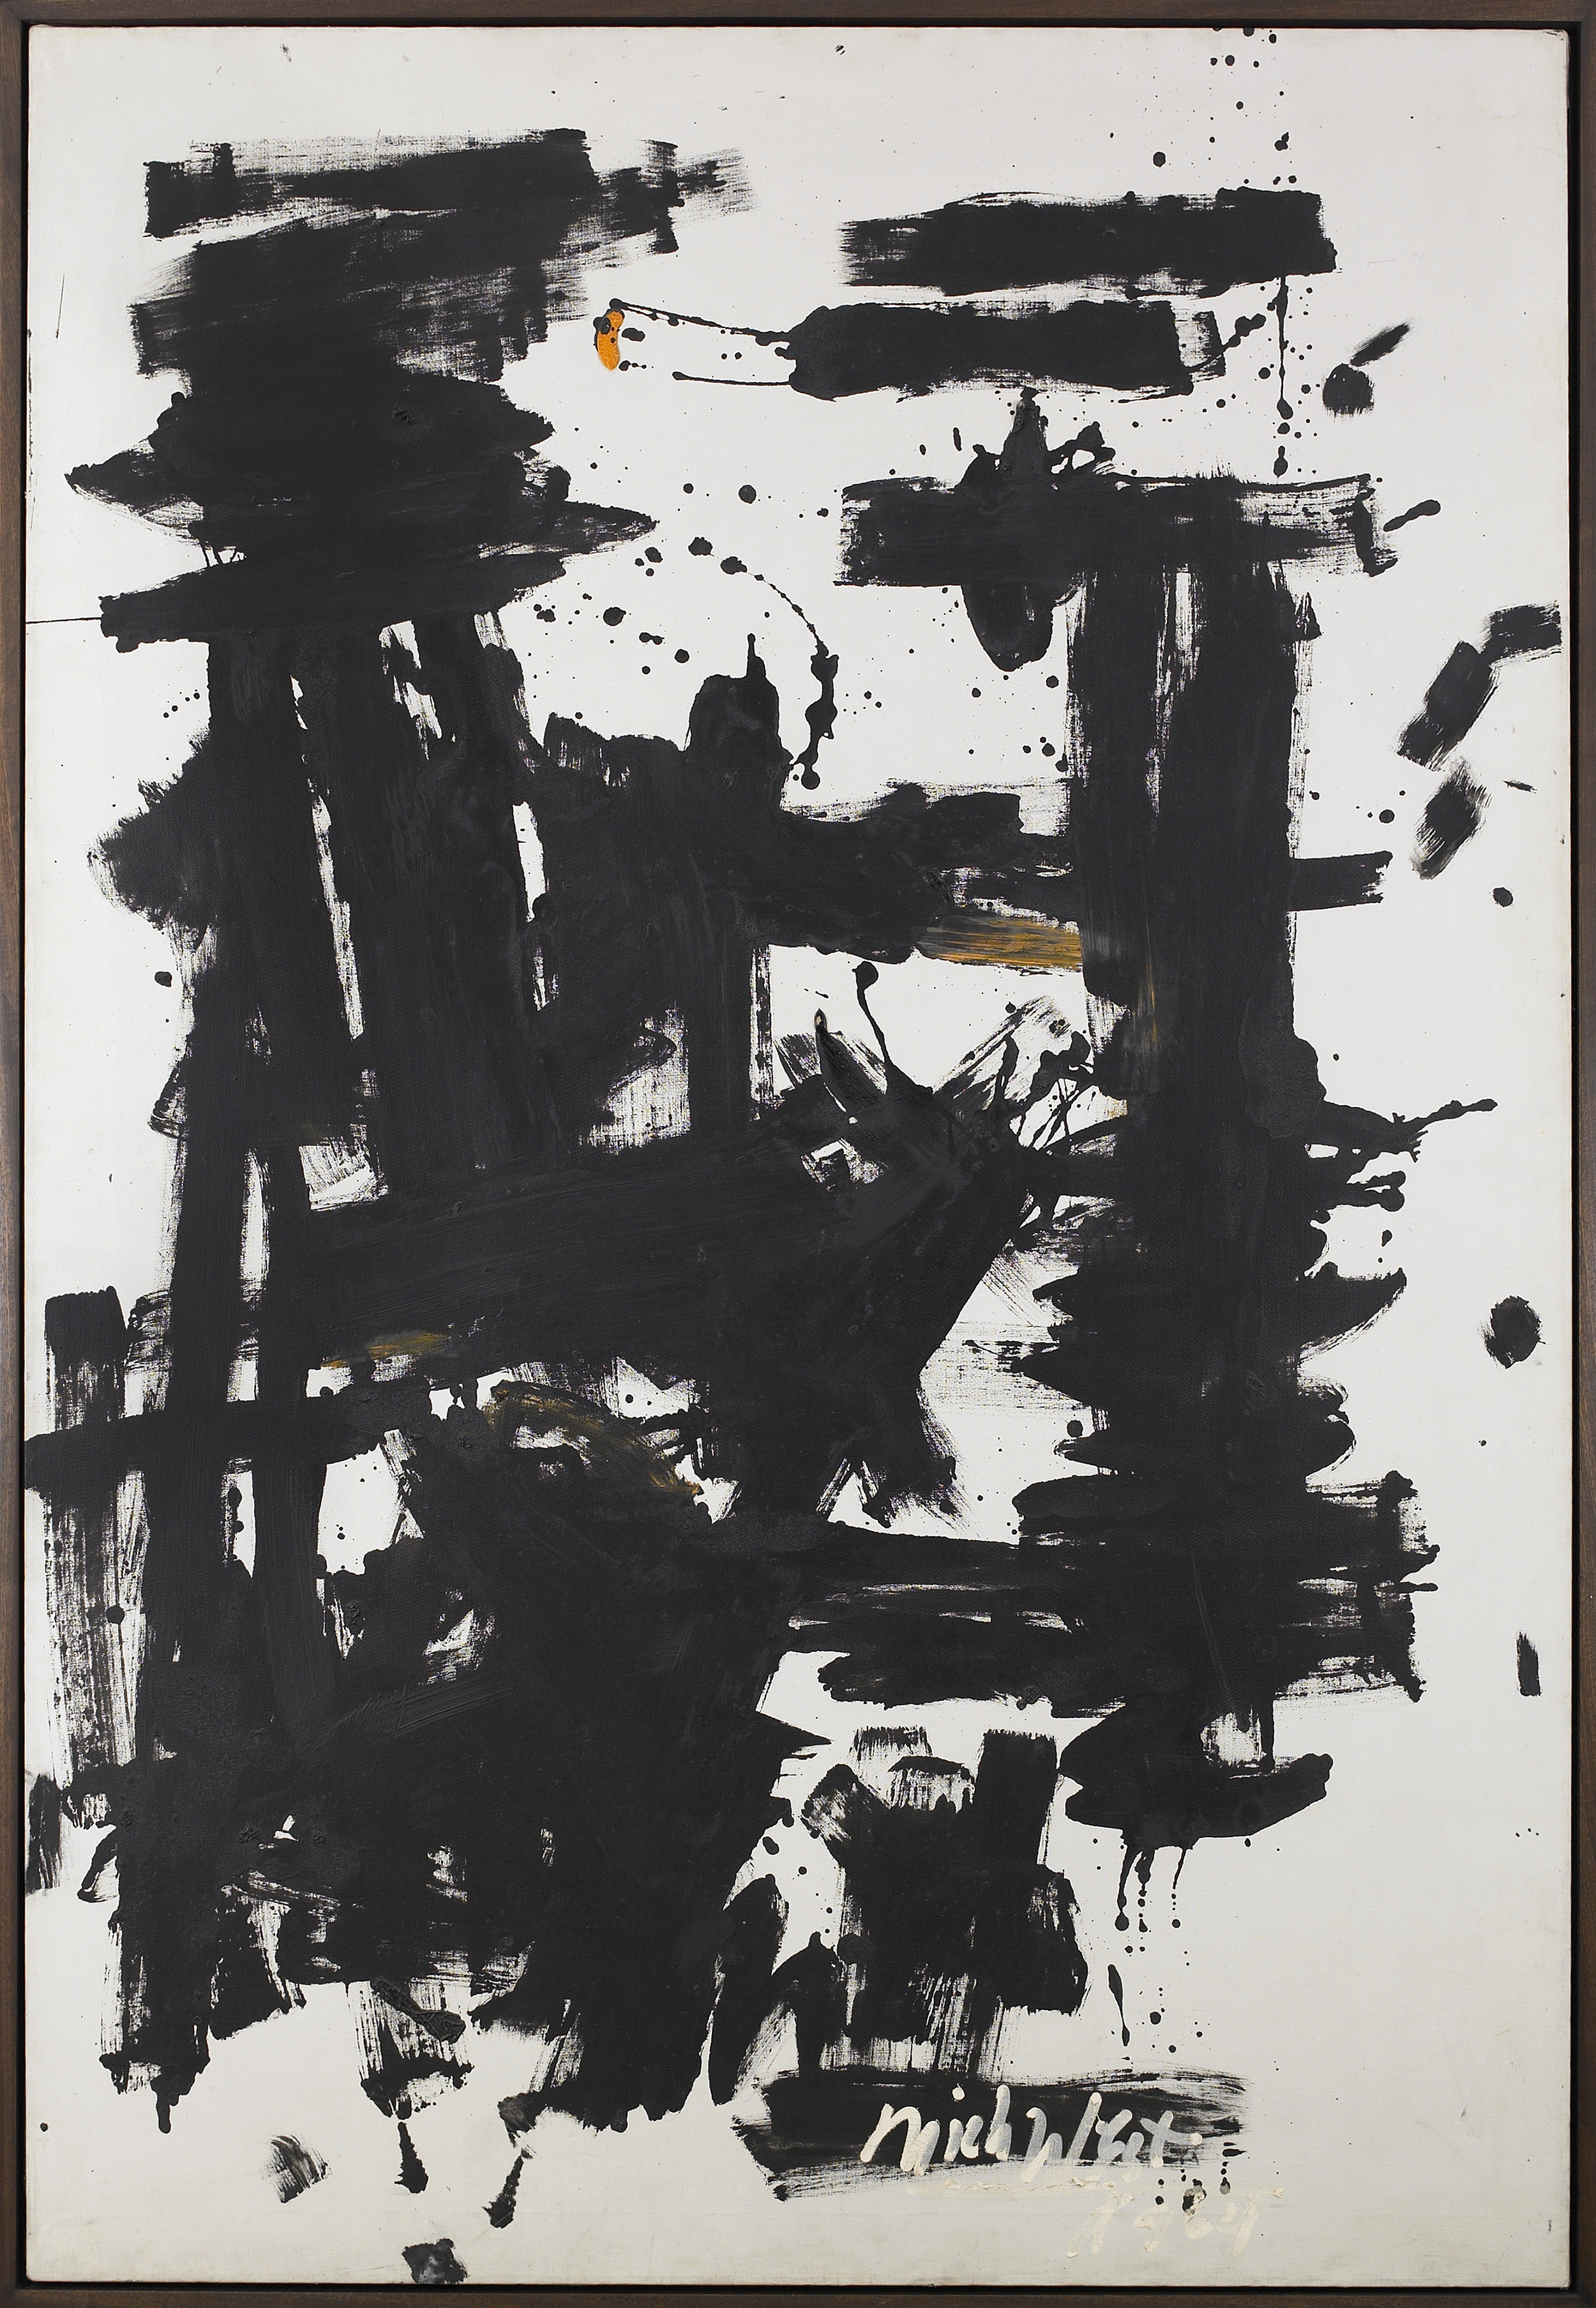 SOLD  June 1964,   Space Study (Good Morning), 1964, Oil on canvas, 75 1/2 x 50 3/4 inches